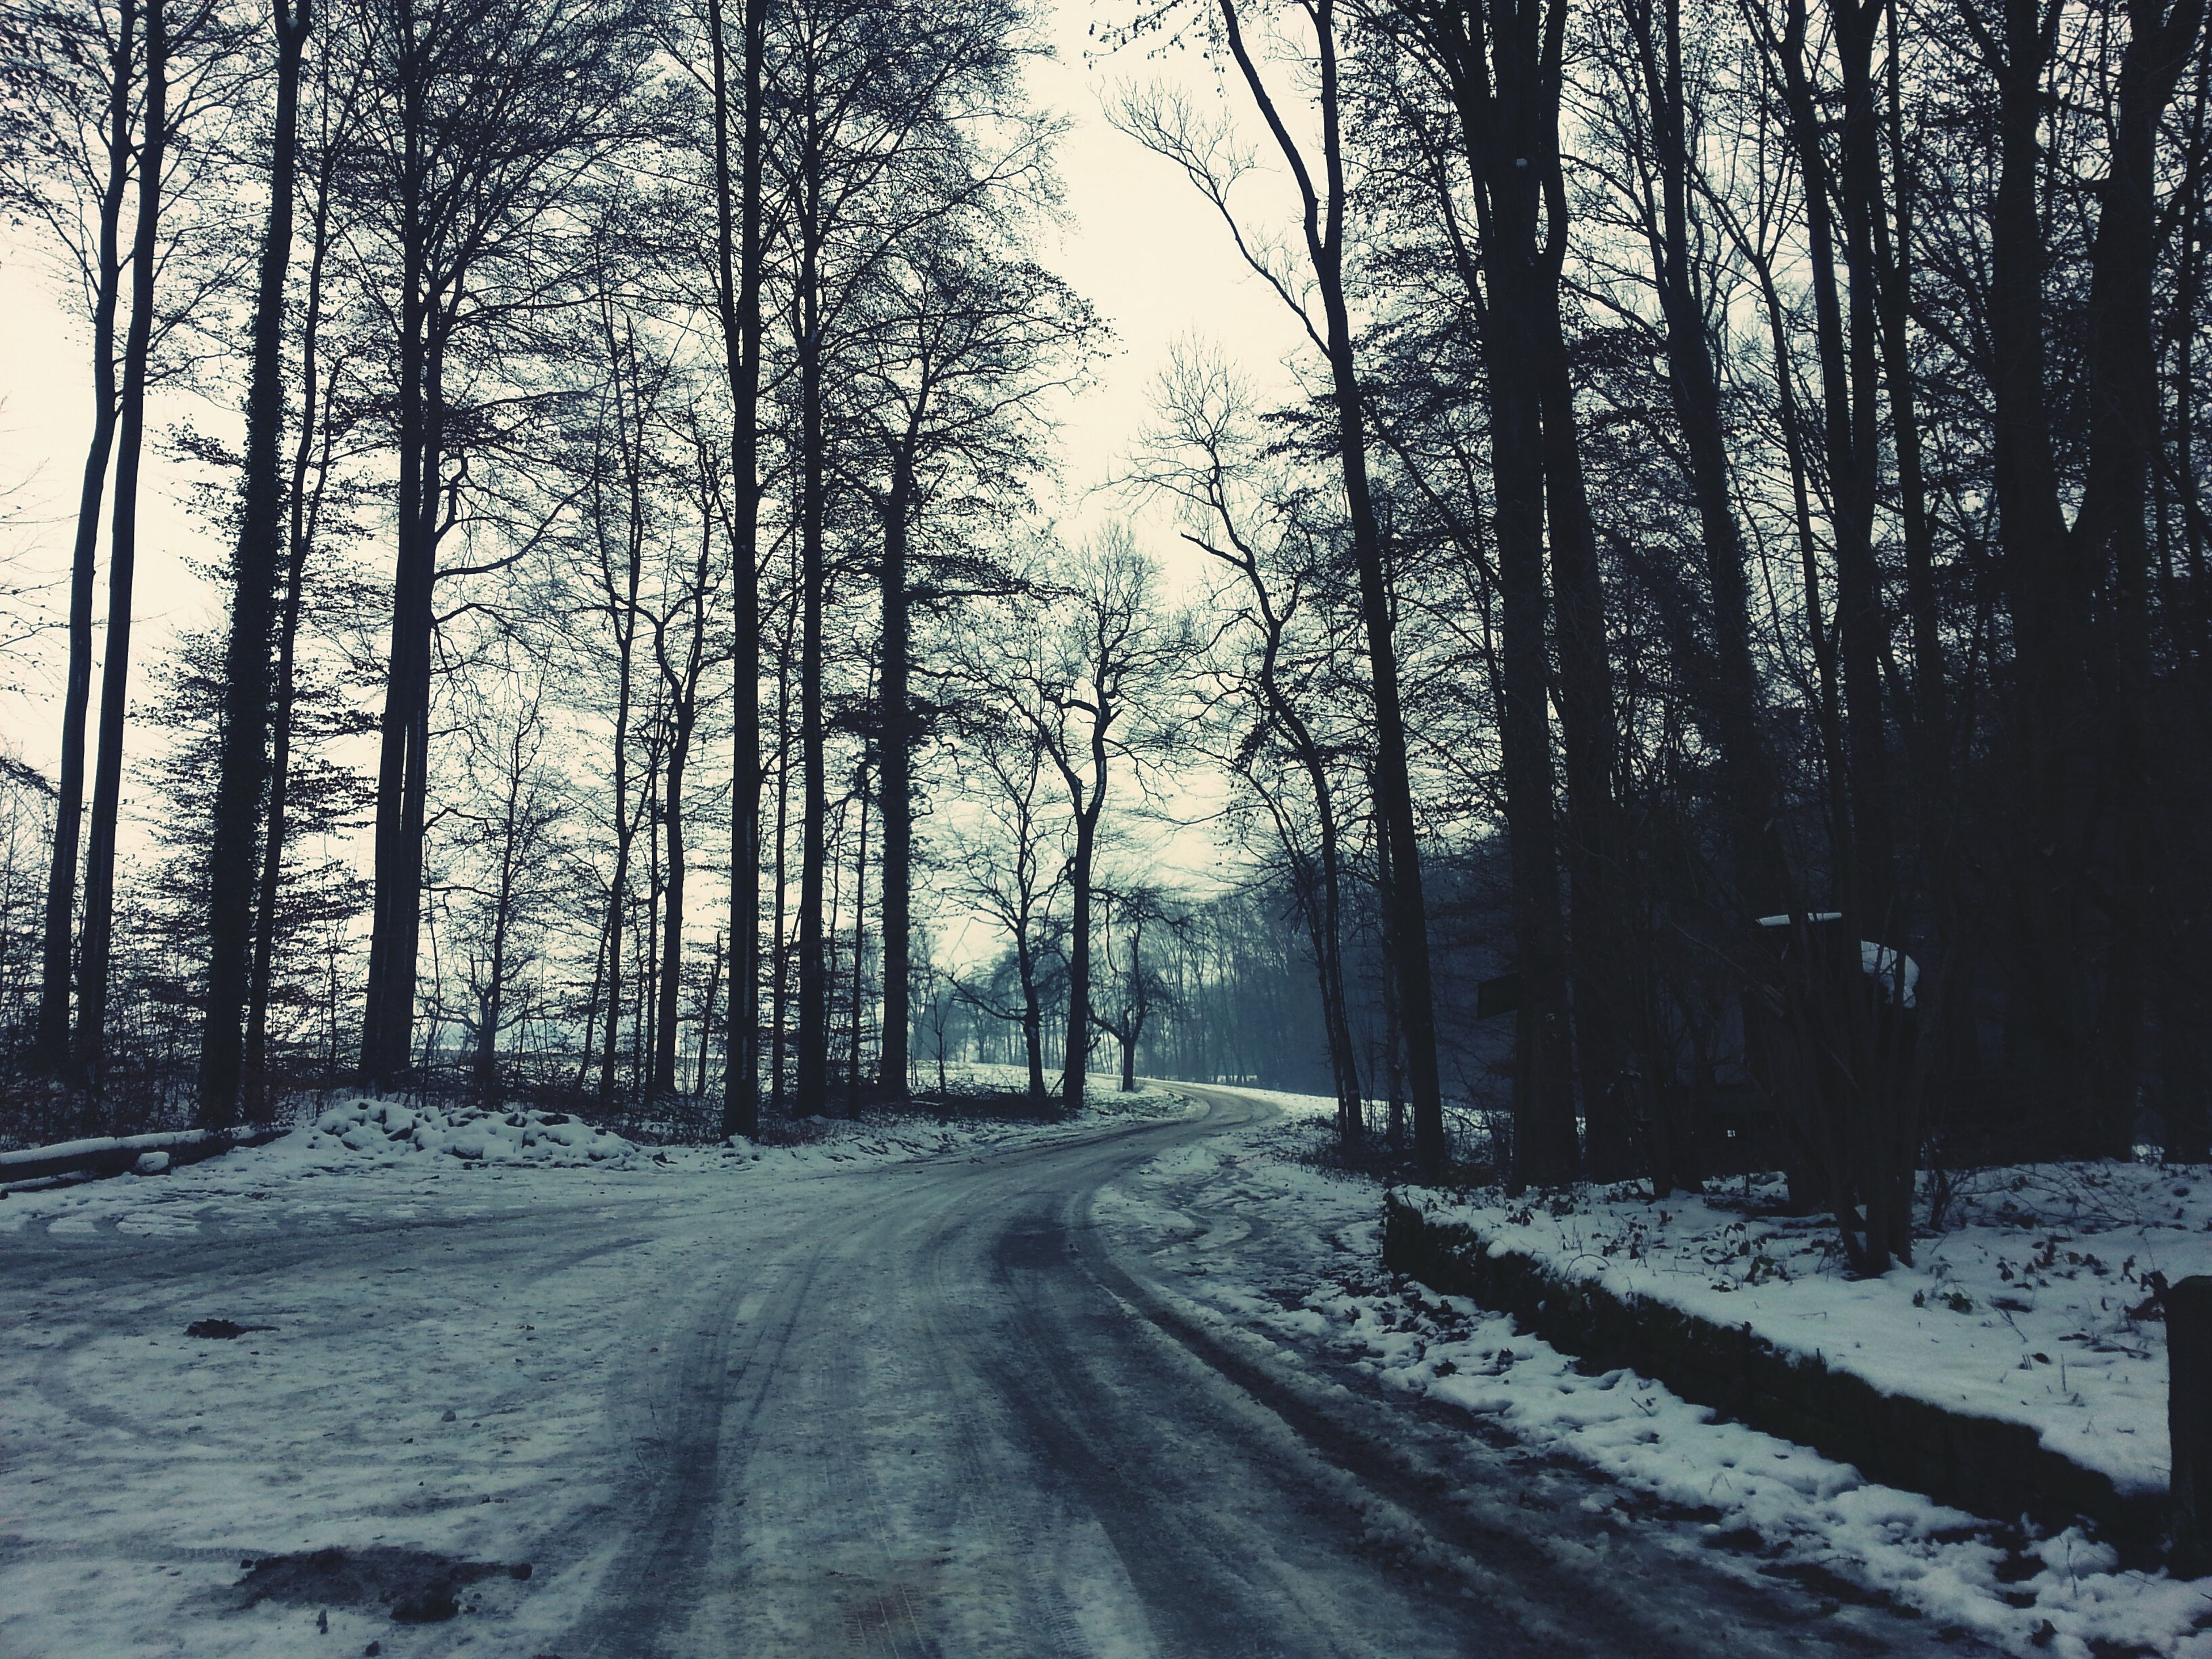 snow, winter, cold temperature, tree, season, bare tree, tranquility, weather, tree trunk, covering, the way forward, tranquil scene, nature, road, beauty in nature, landscape, branch, scenics, frozen, white color